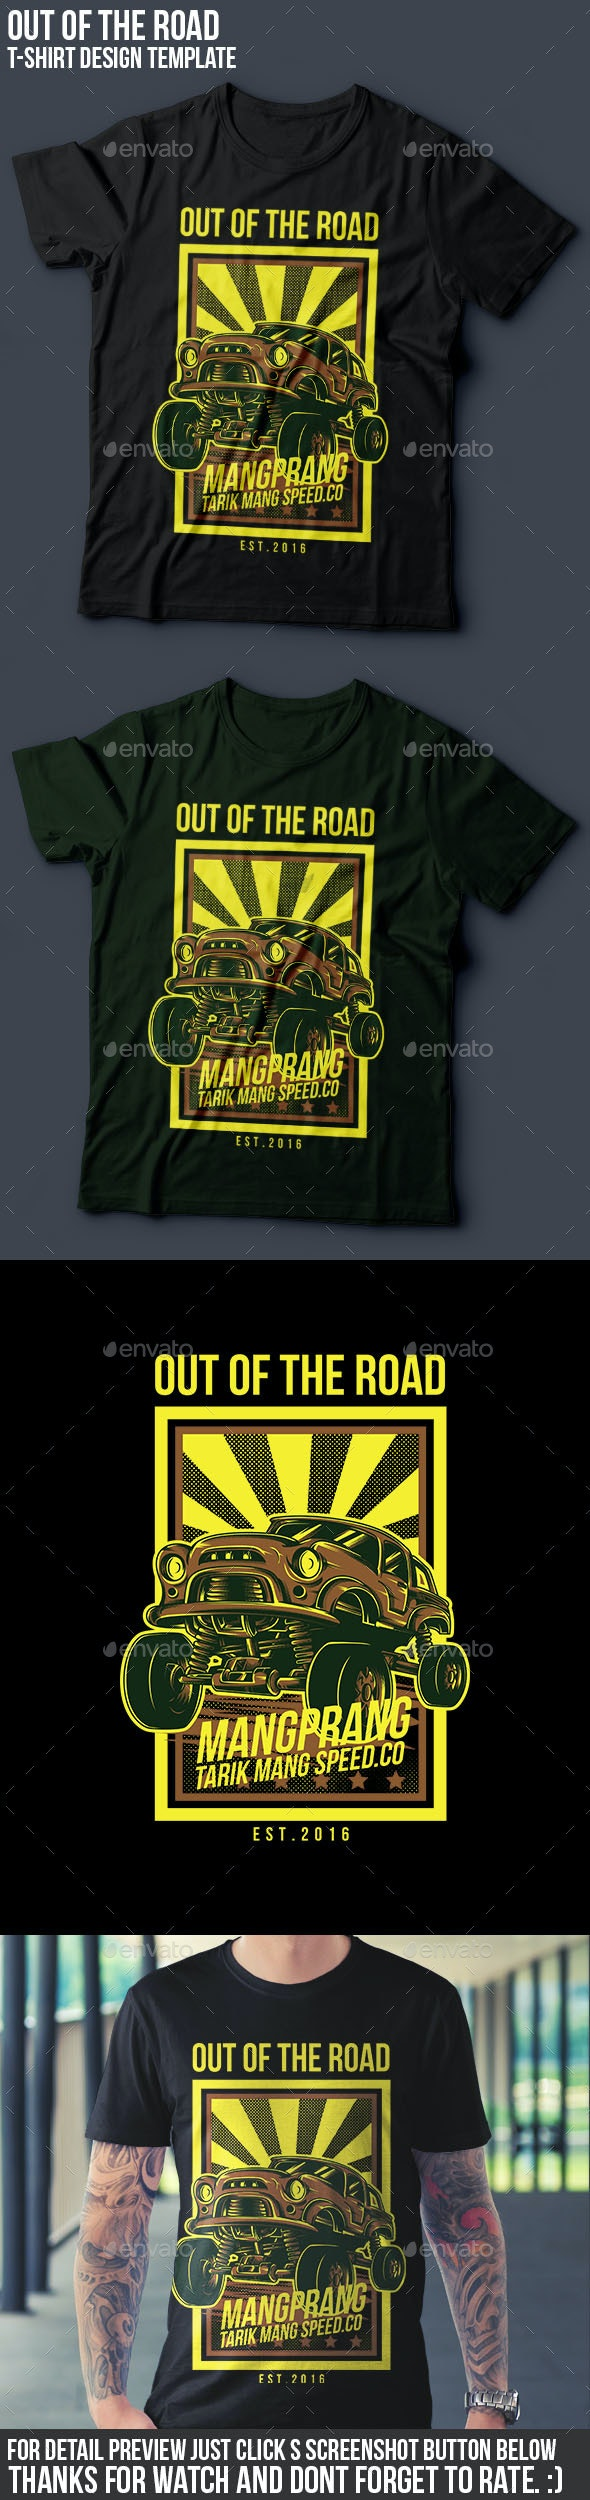 Out of the Road T-Shirt Design - Events T-Shirts